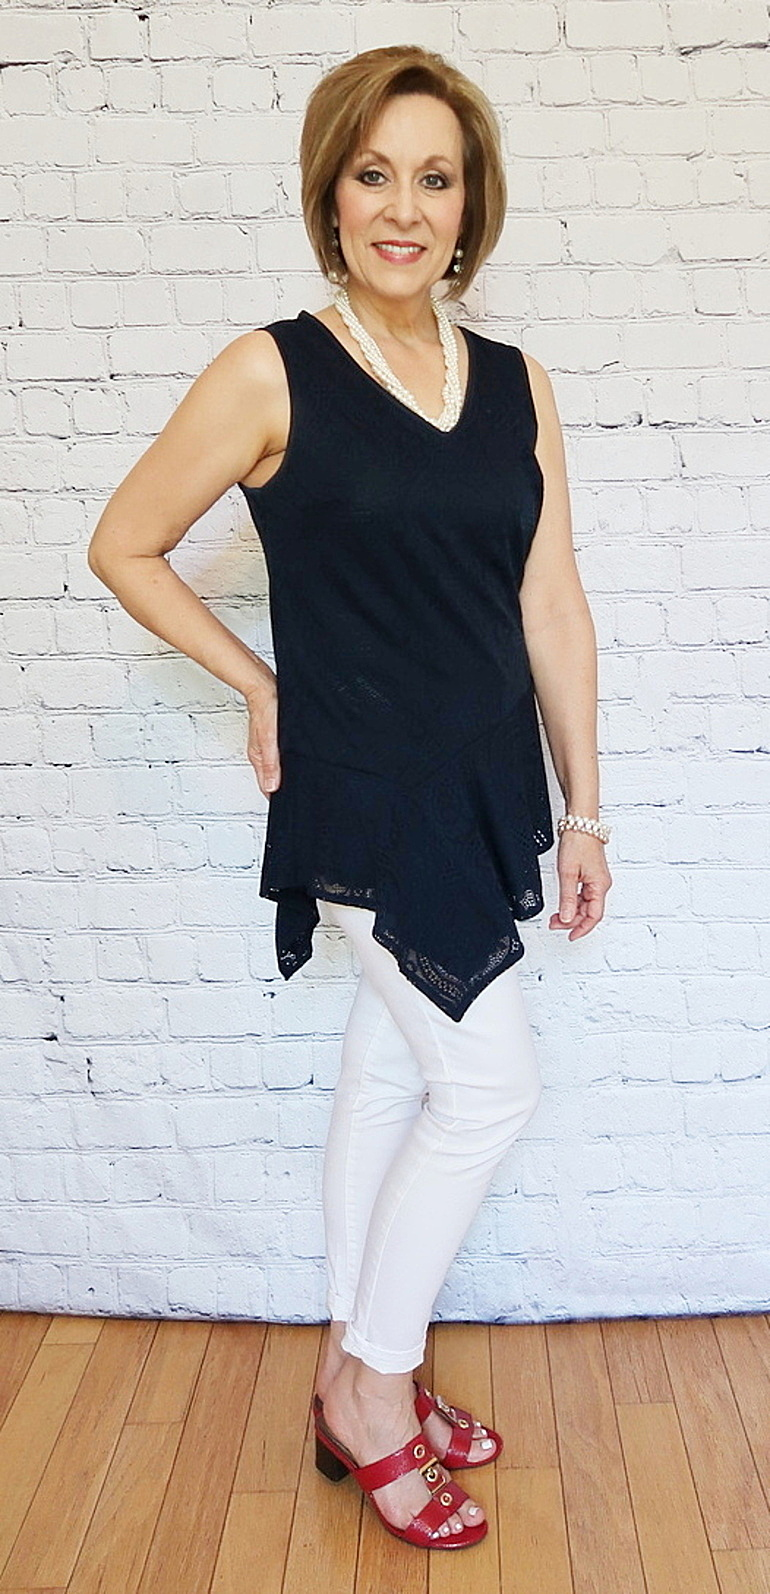 50 With Flair, Over 40 and 50 Fashion, Navy Asymetrical Lace Top, White Skinny Jeans, Red Sandals